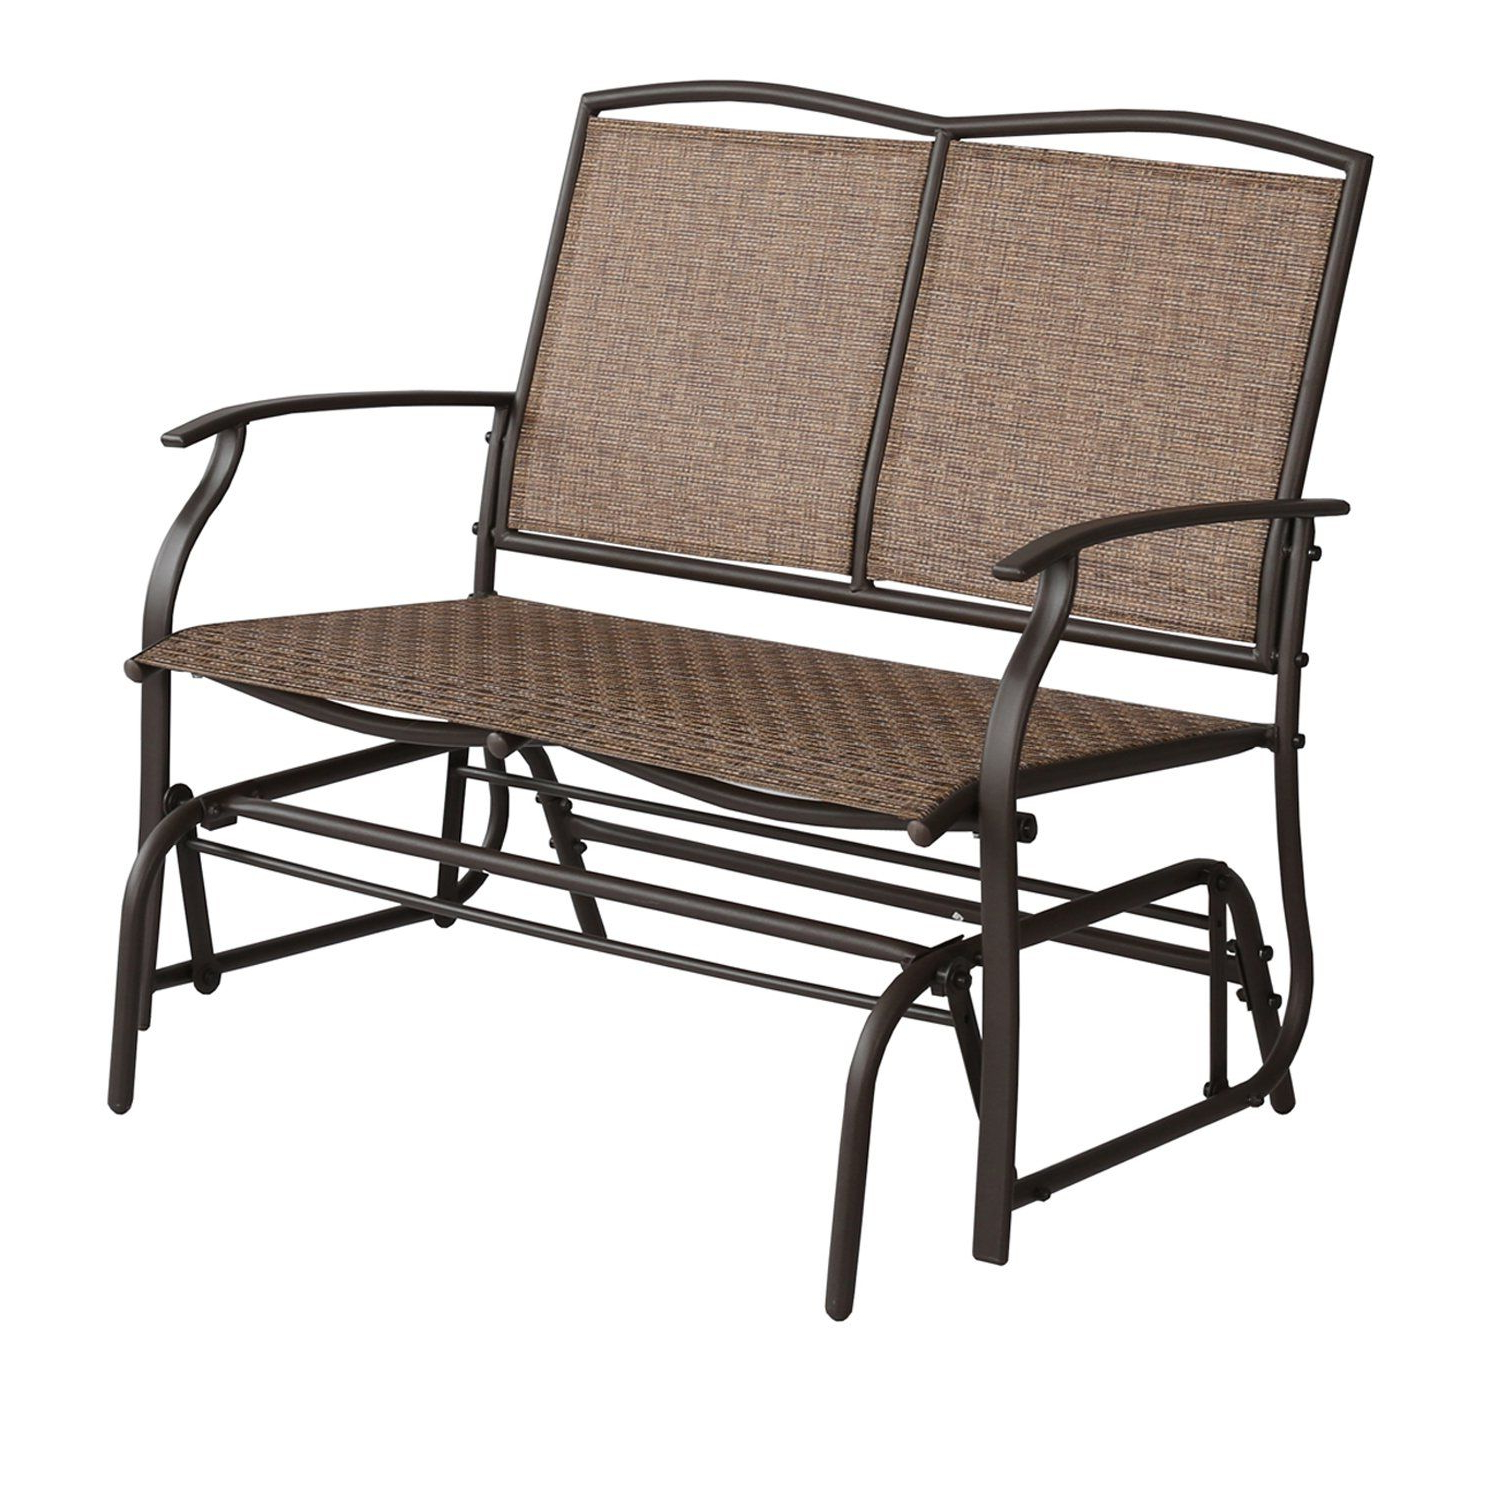 2 Person Loveseat Chair Patio Porch Swings With Rocker For Well Liked Patio Tree Patio Swing Glider Bench For 2 Person All (View 14 of 30)